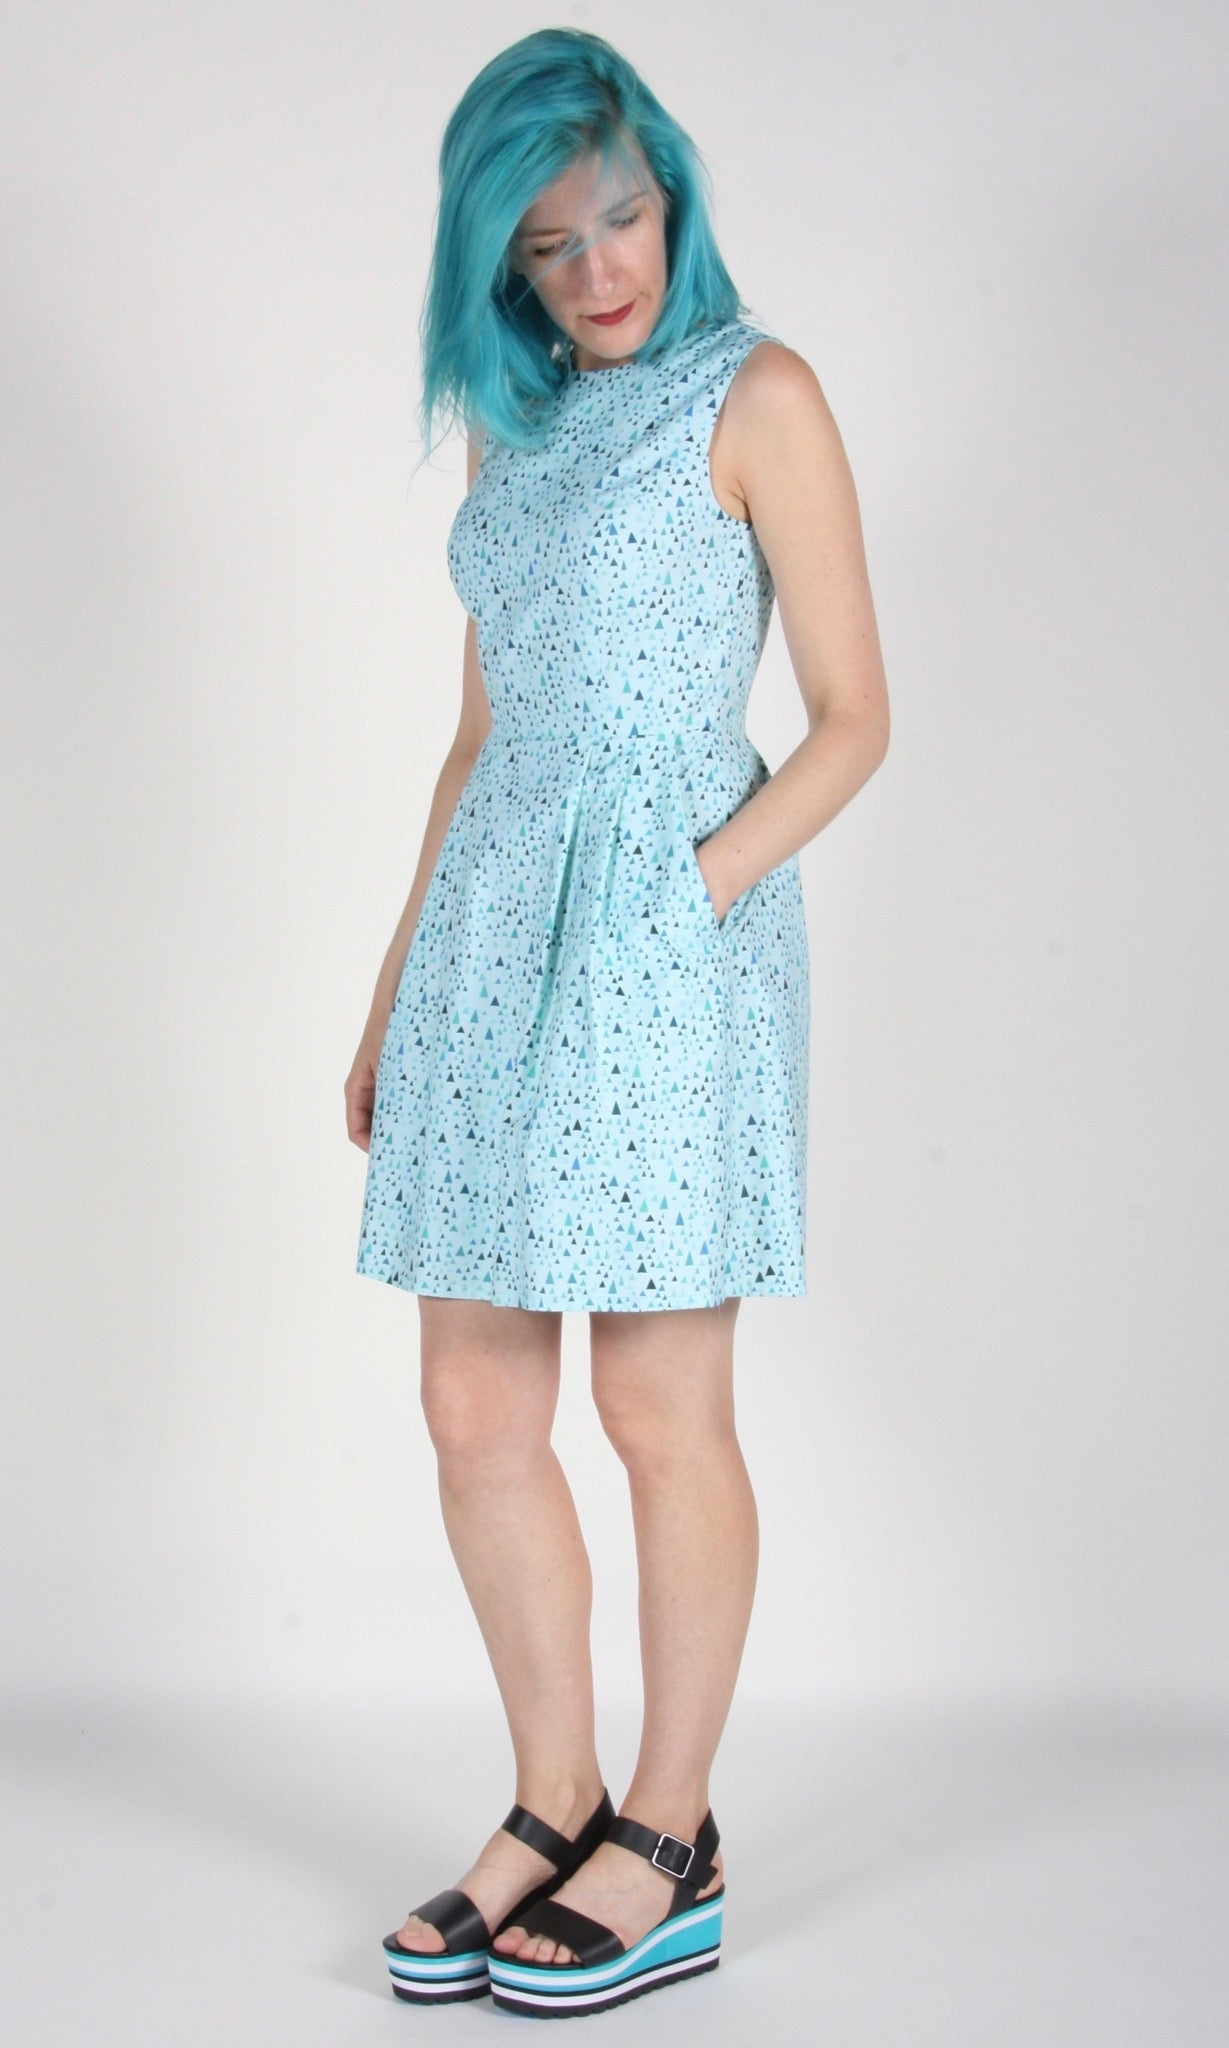 Willet Dress - Aqua Triangle Confetti